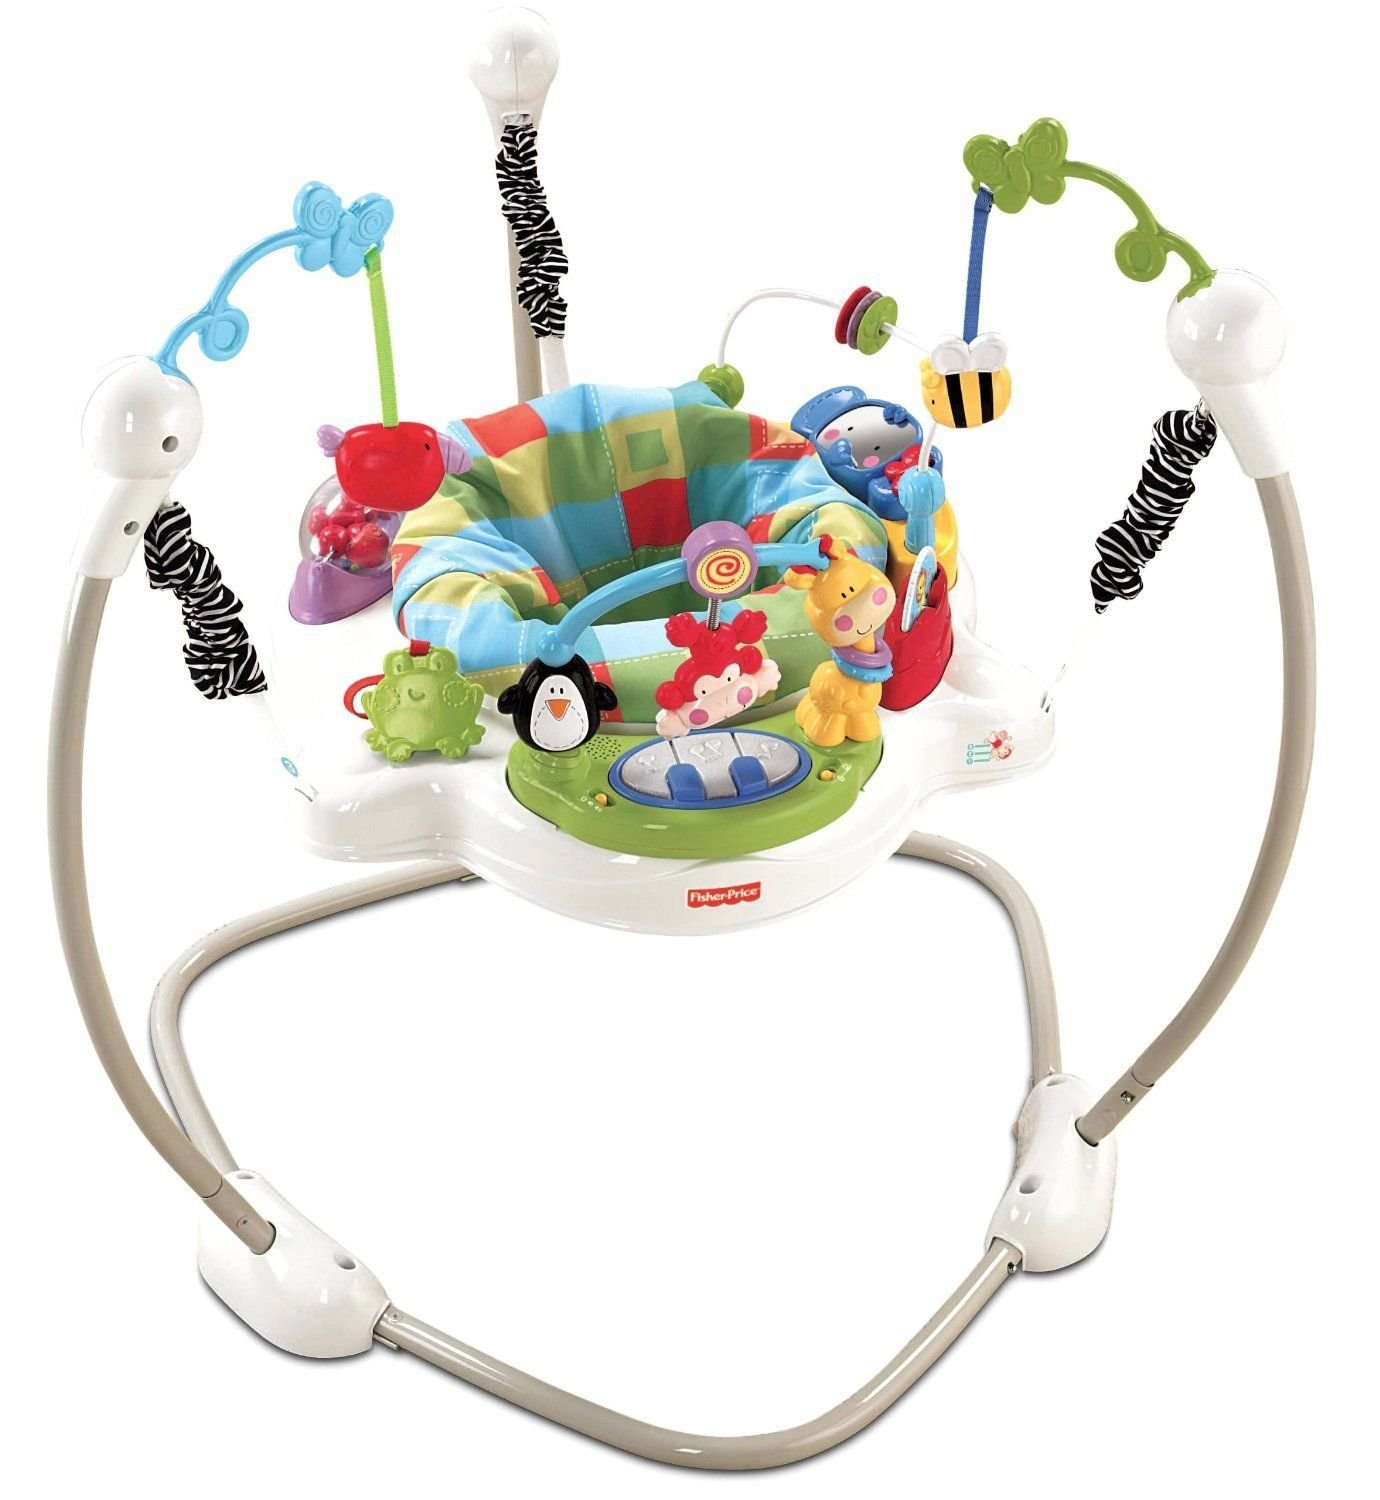 Fisher price jumperoo - Amazon Com Fisher Price Discover And N Grow Jungle Piano Jumper Jumperoo Bouncer Gym Baby